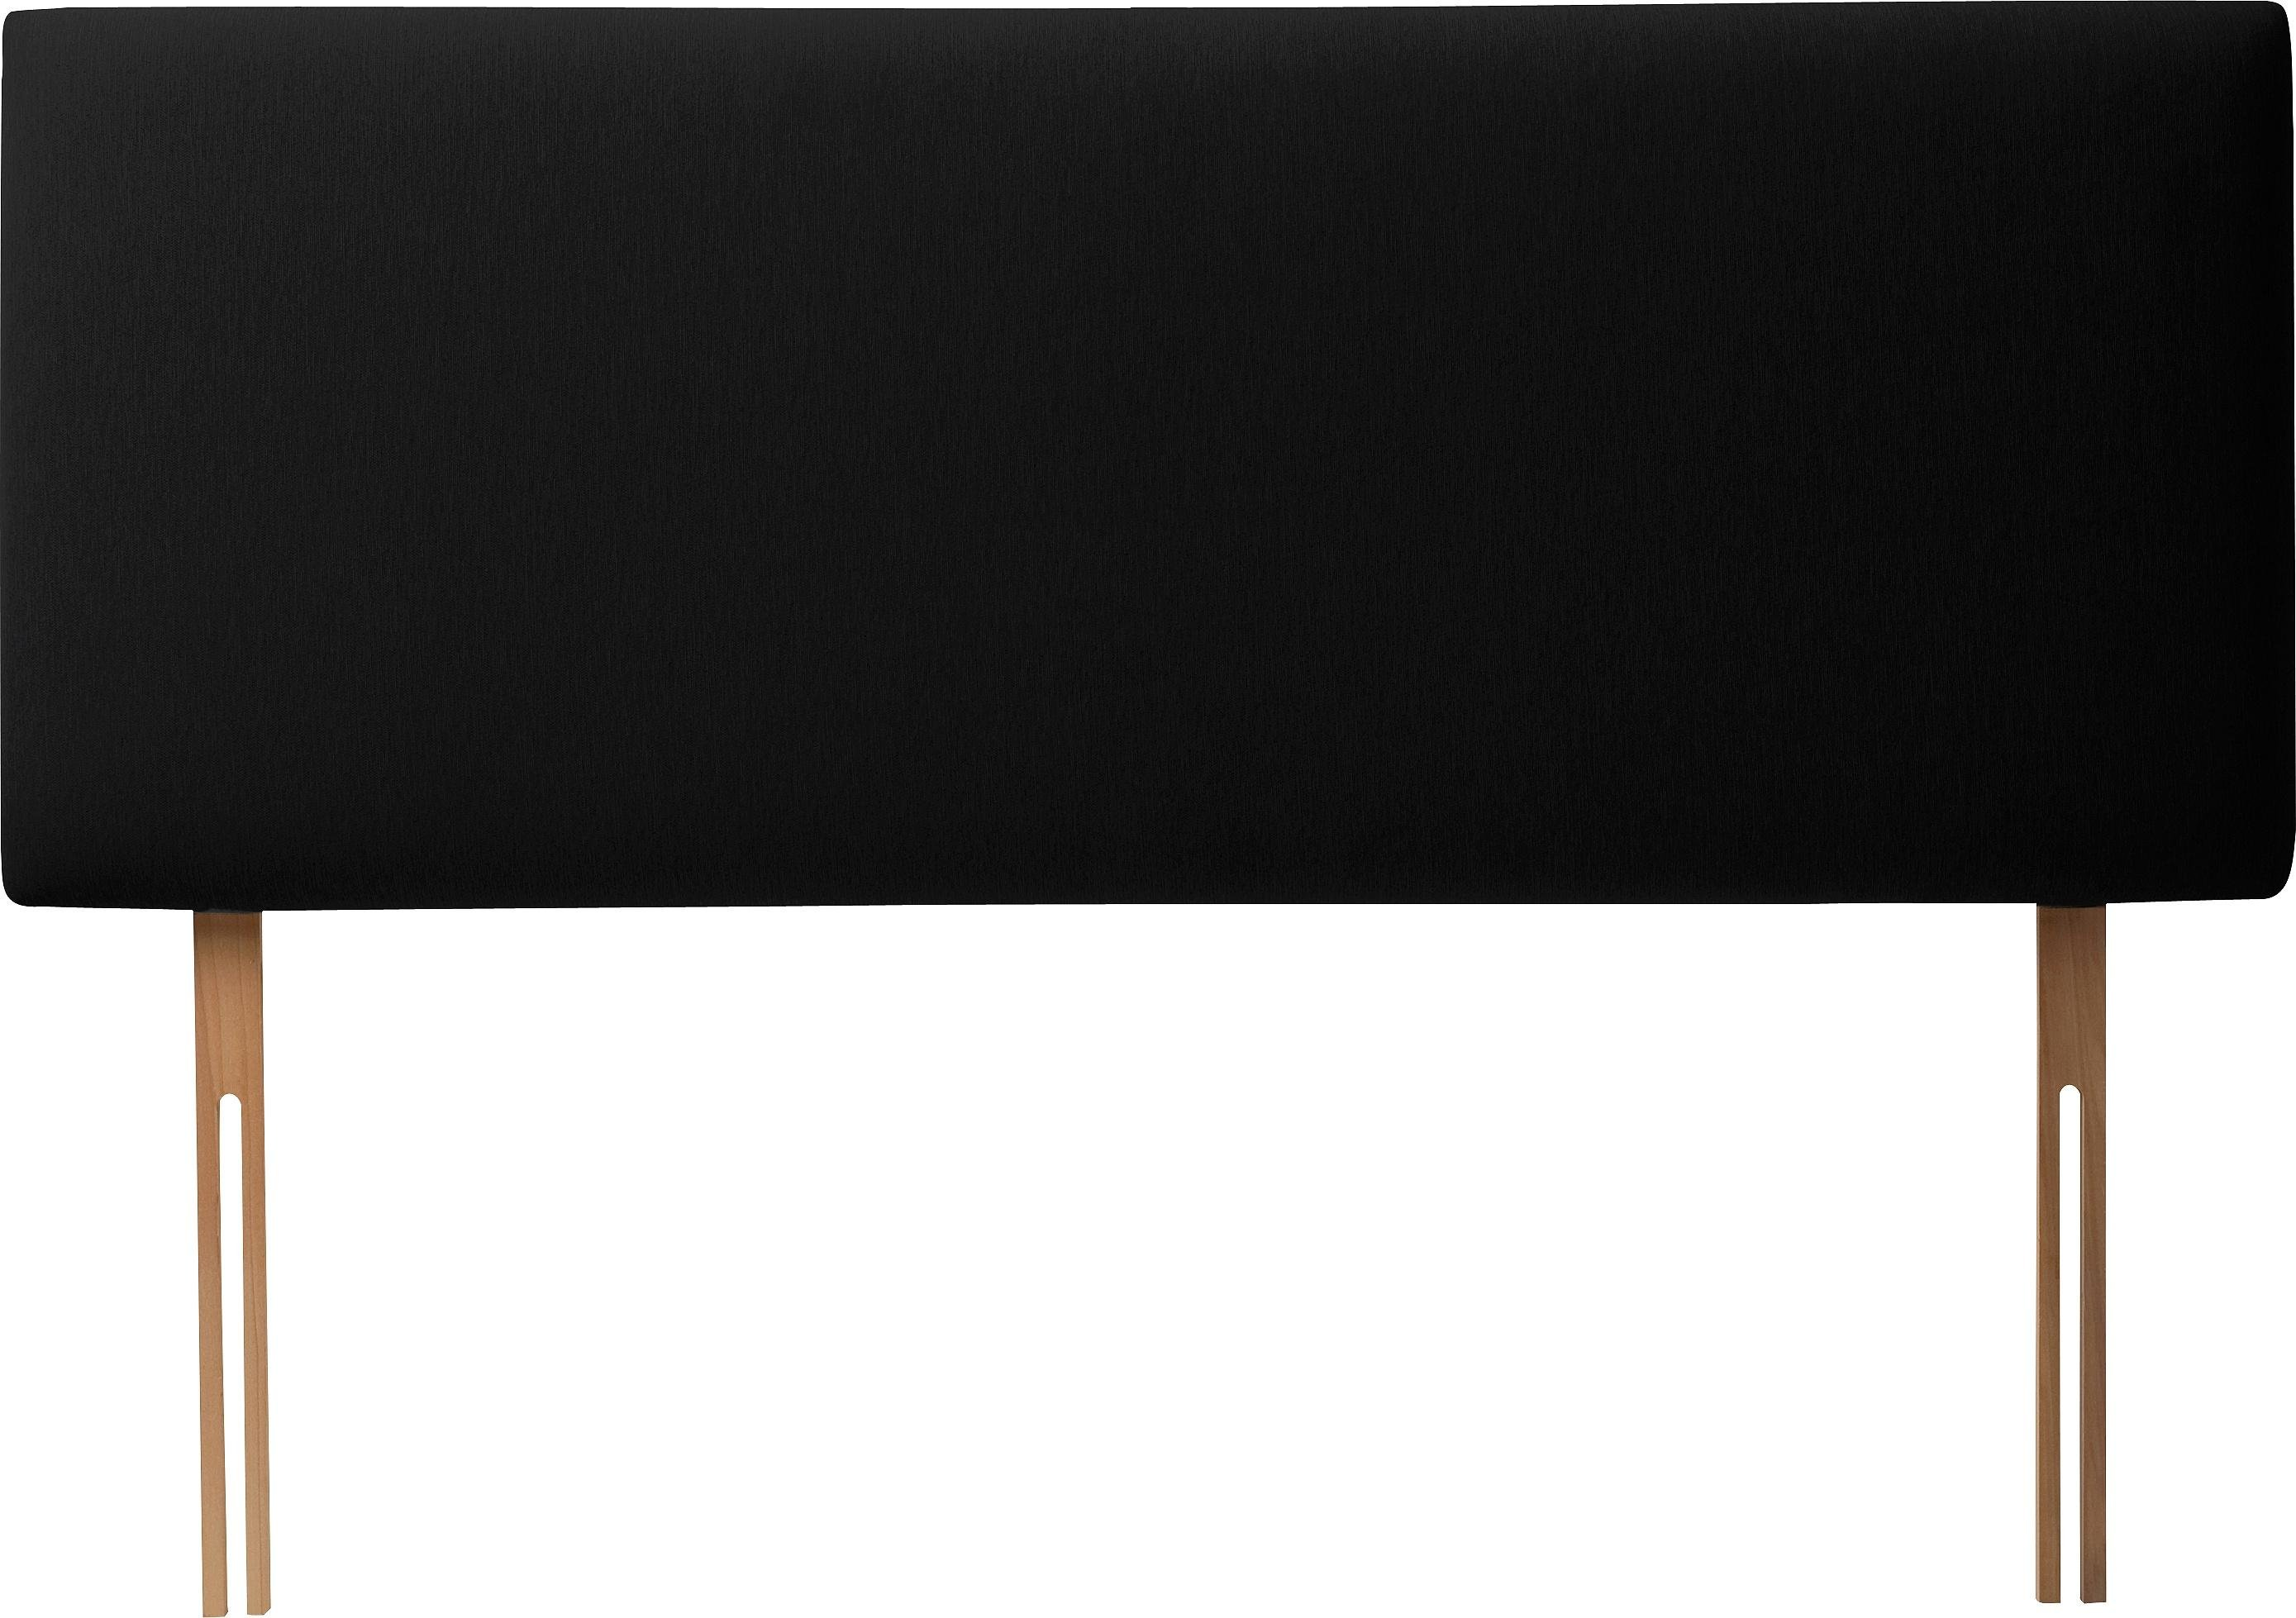 Silentnight - Milan - Single - Headboard - Black at Argos